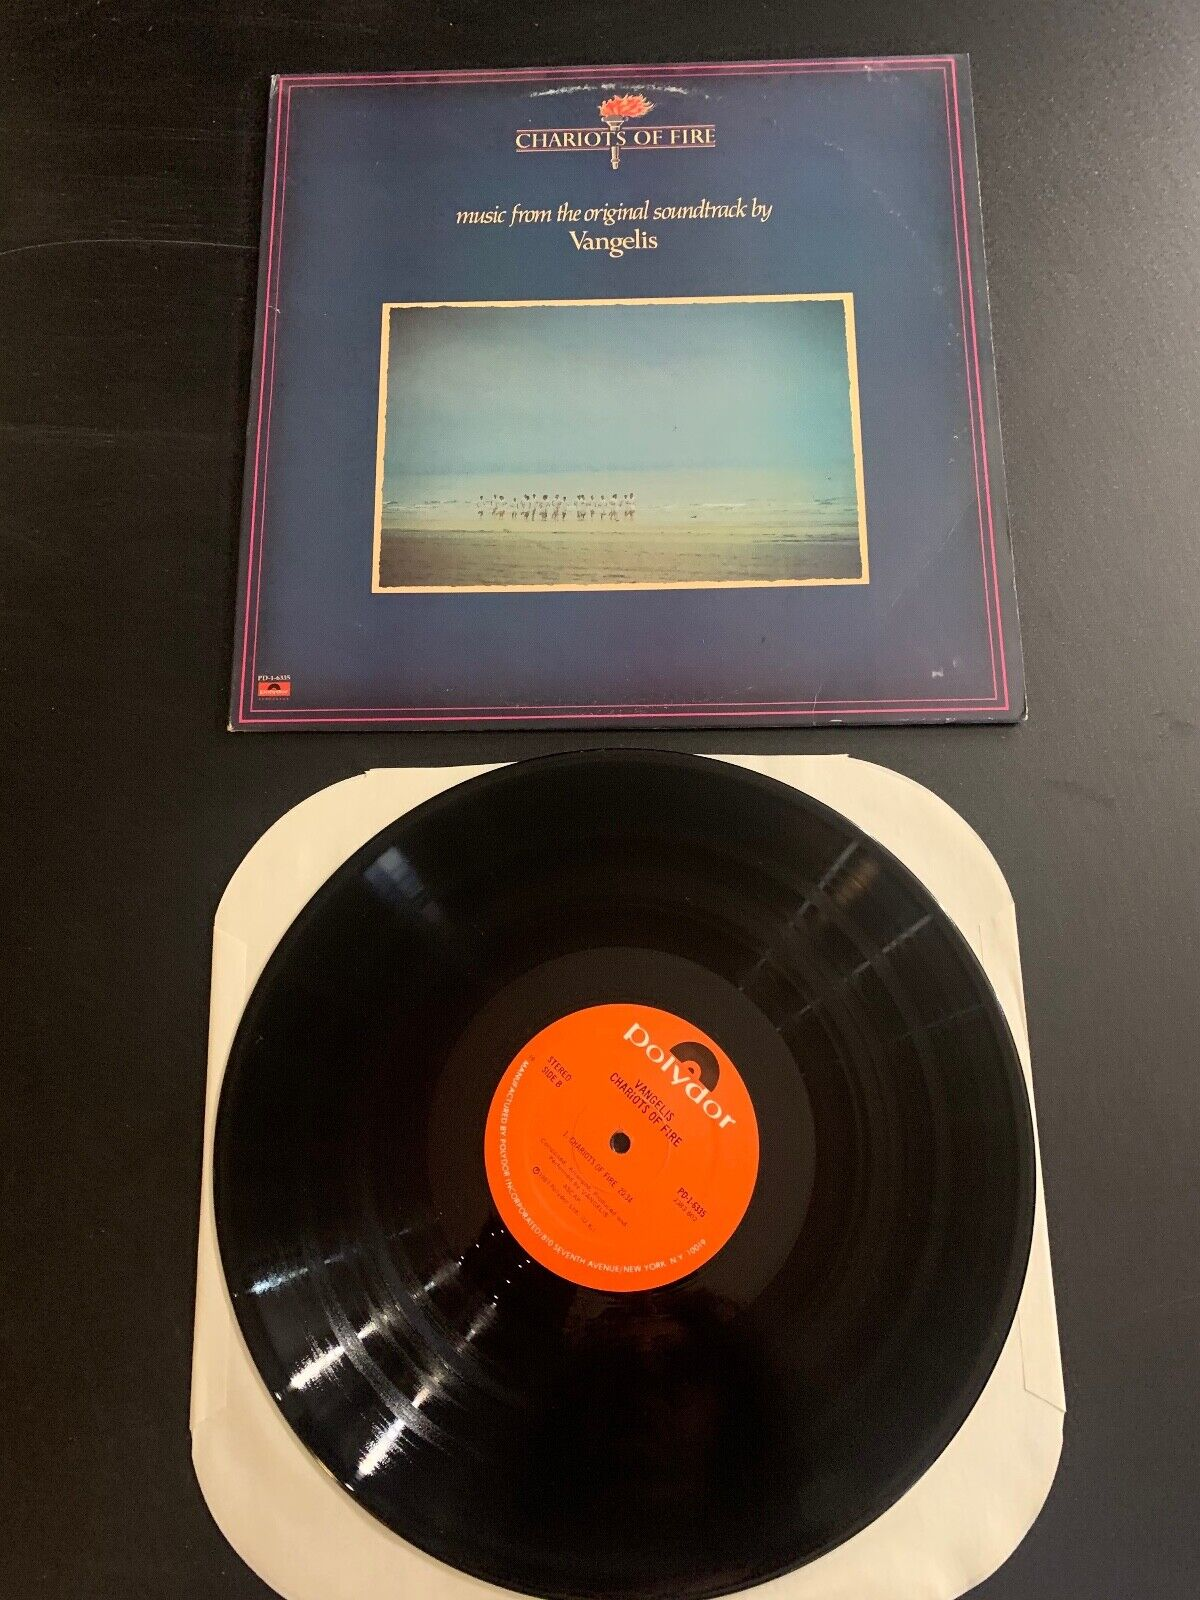 LP RECORD - CHARIOTS OF FIRE - ORIGINAL SOUNDTRACK - POLYPRO RECORDS - $9.99